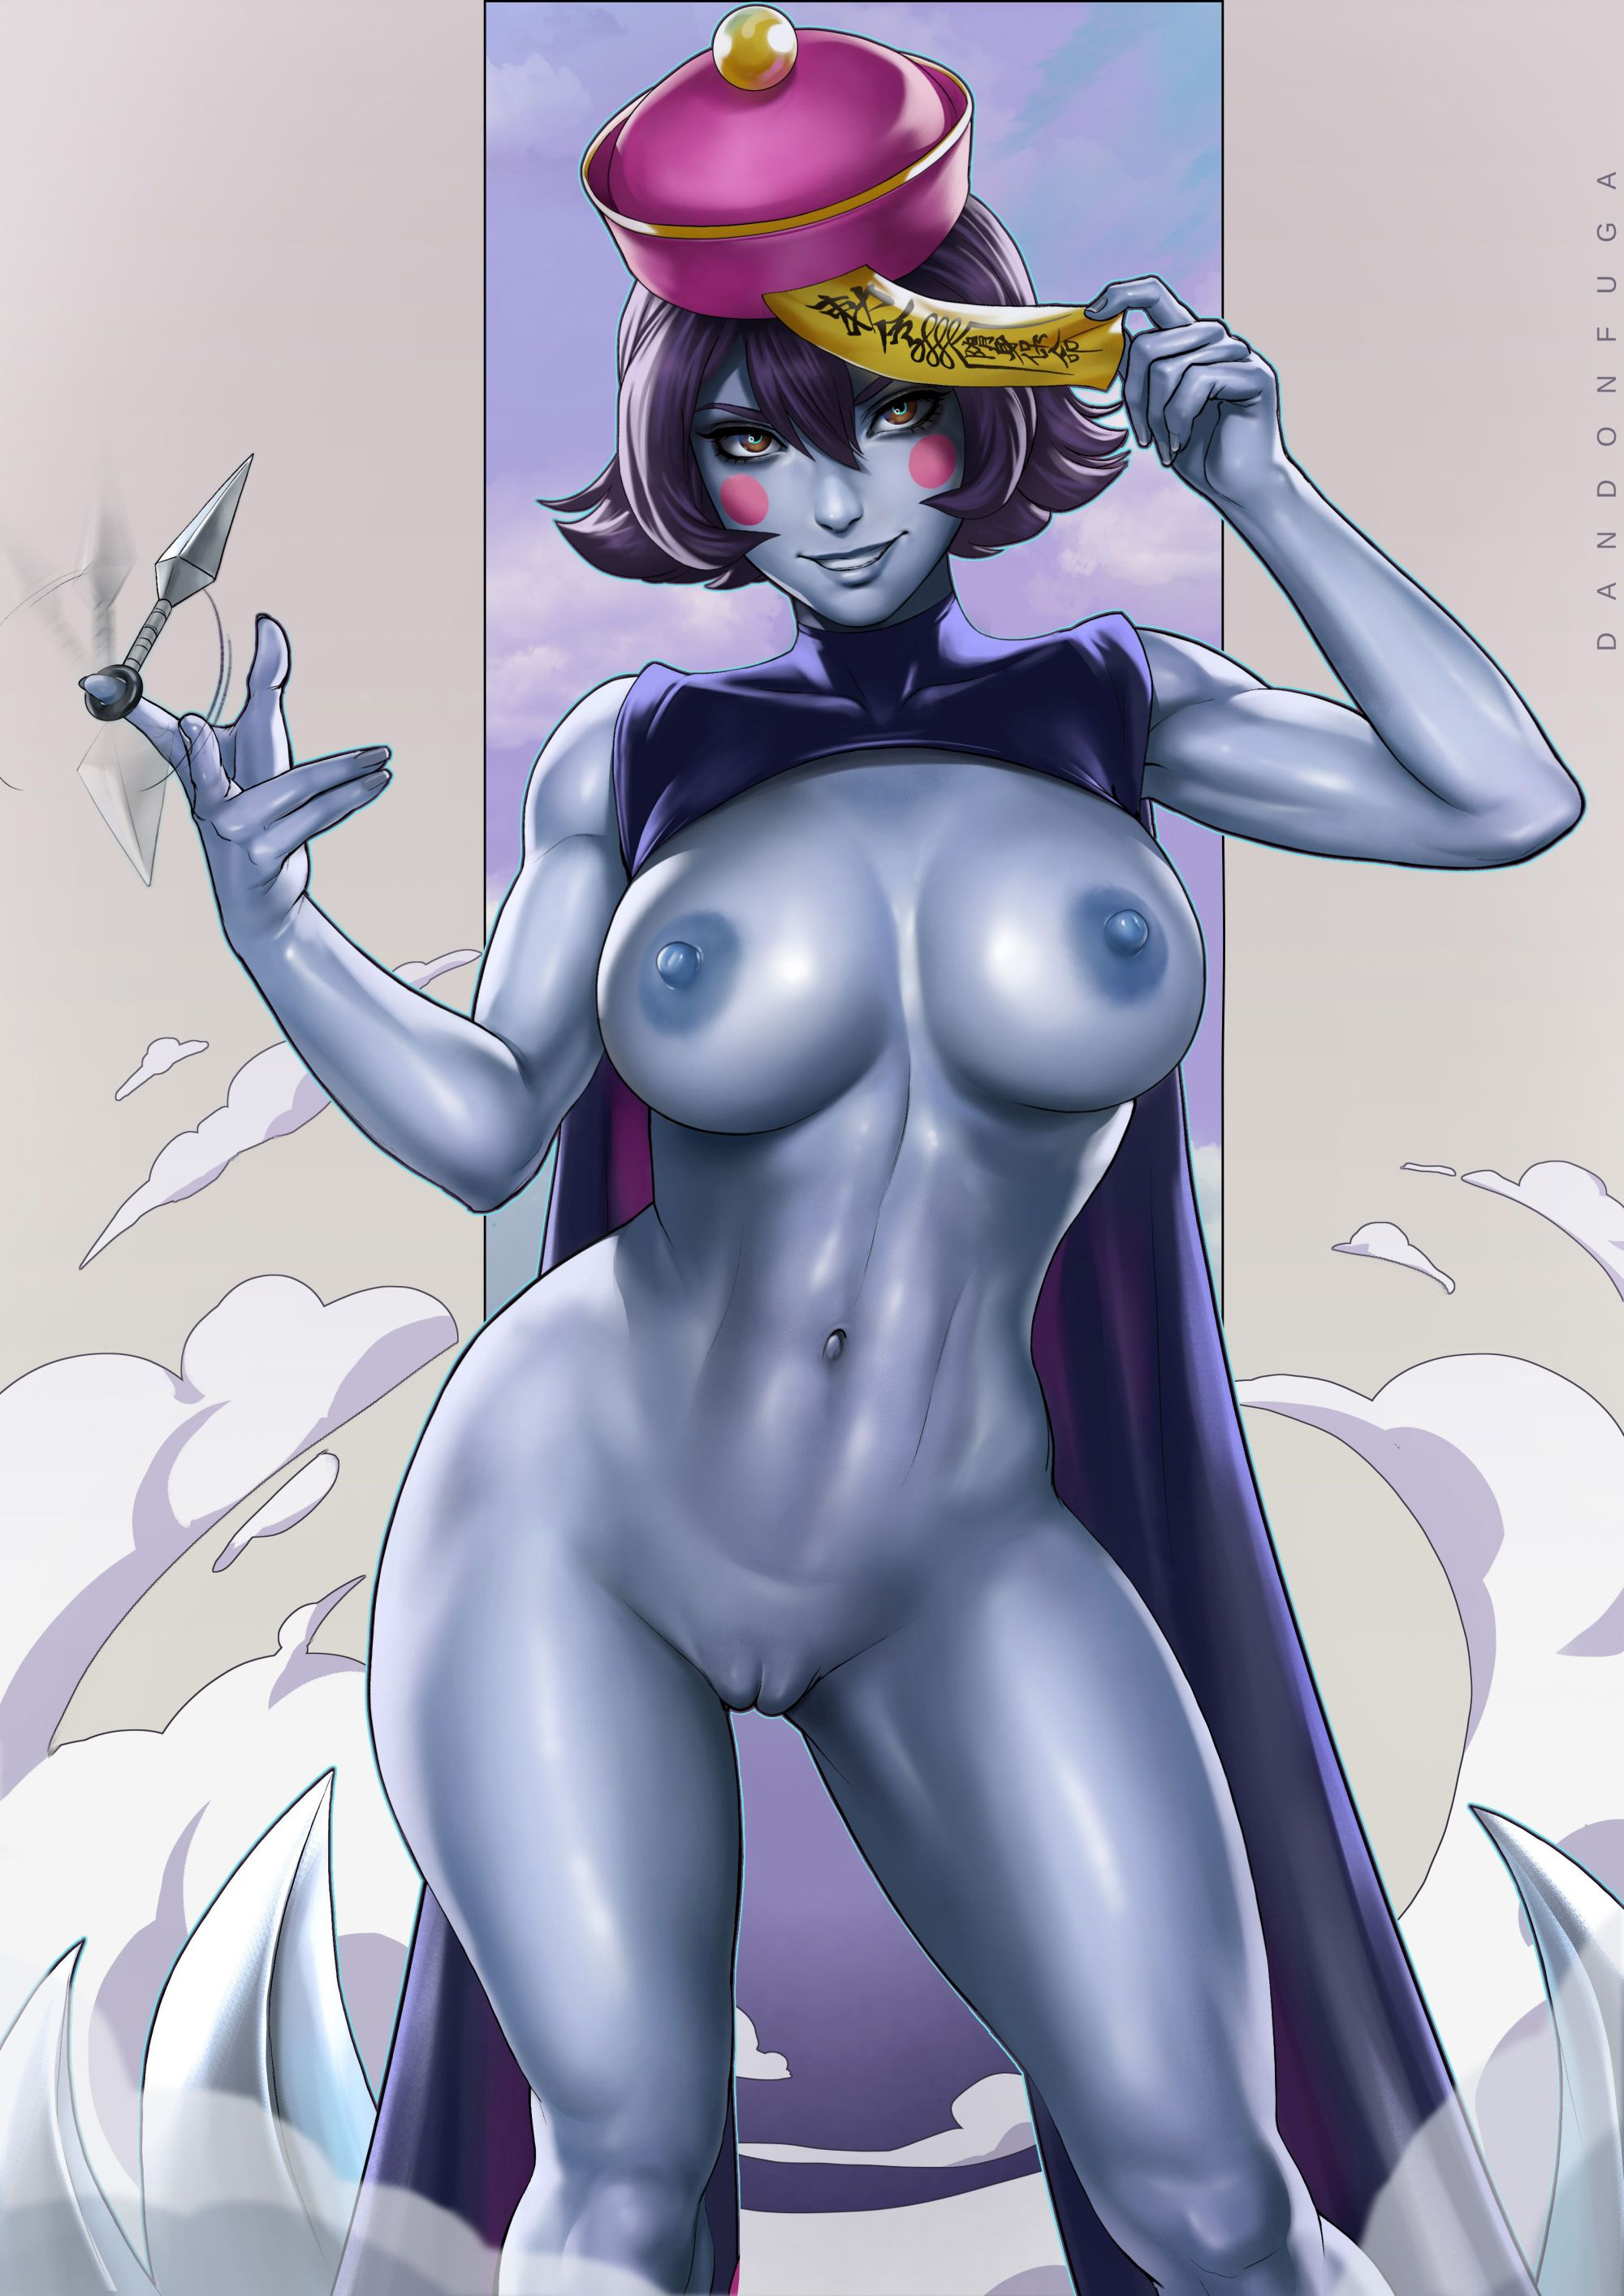 Thirty Hentai Pictures Of Hsien-Ko From Darkstalkers